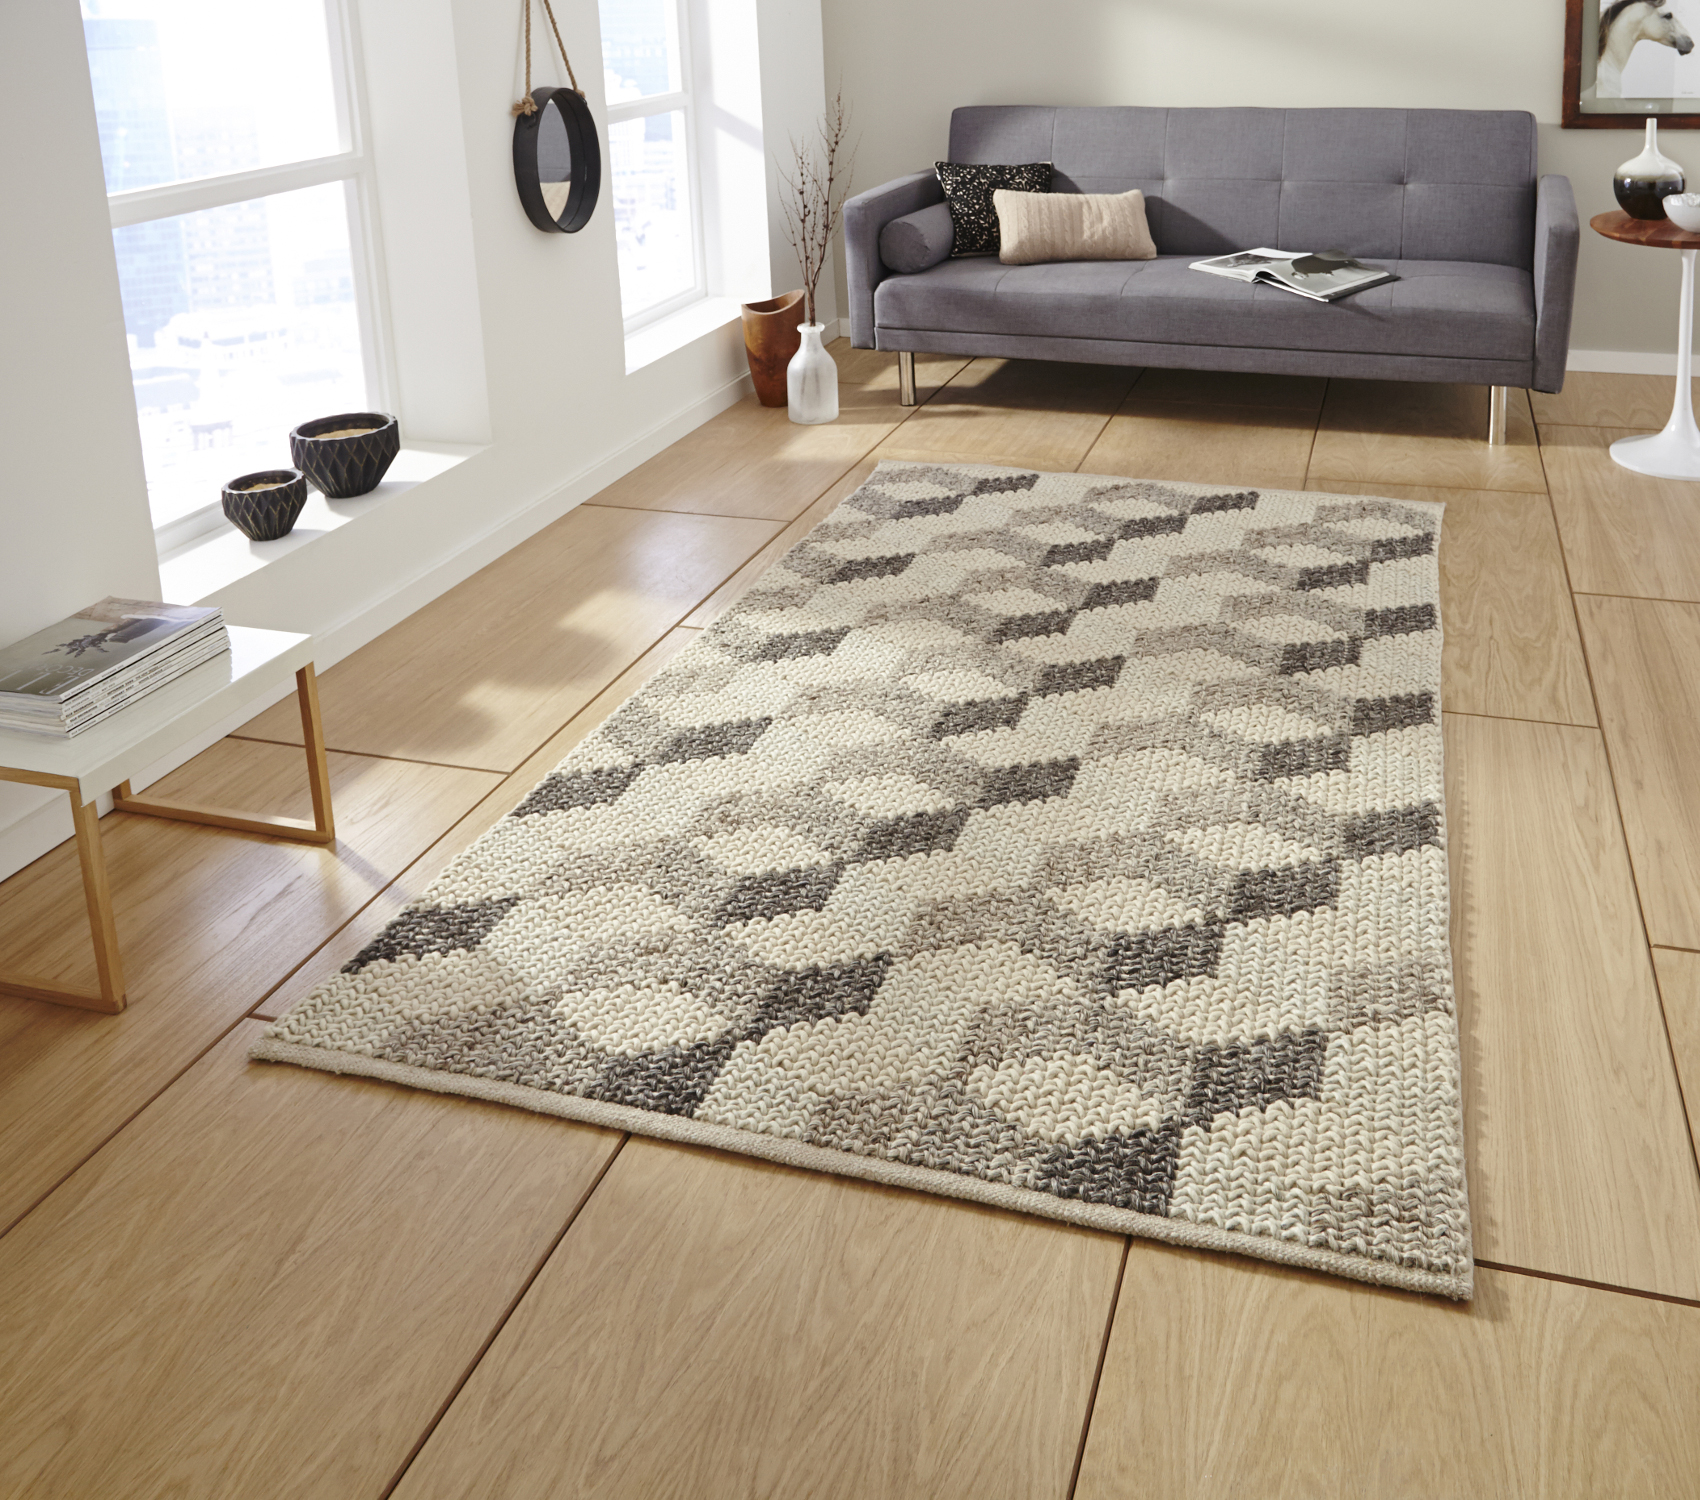 Alpha Hand Knotted 100% Wool Rug Neutral Textured Large